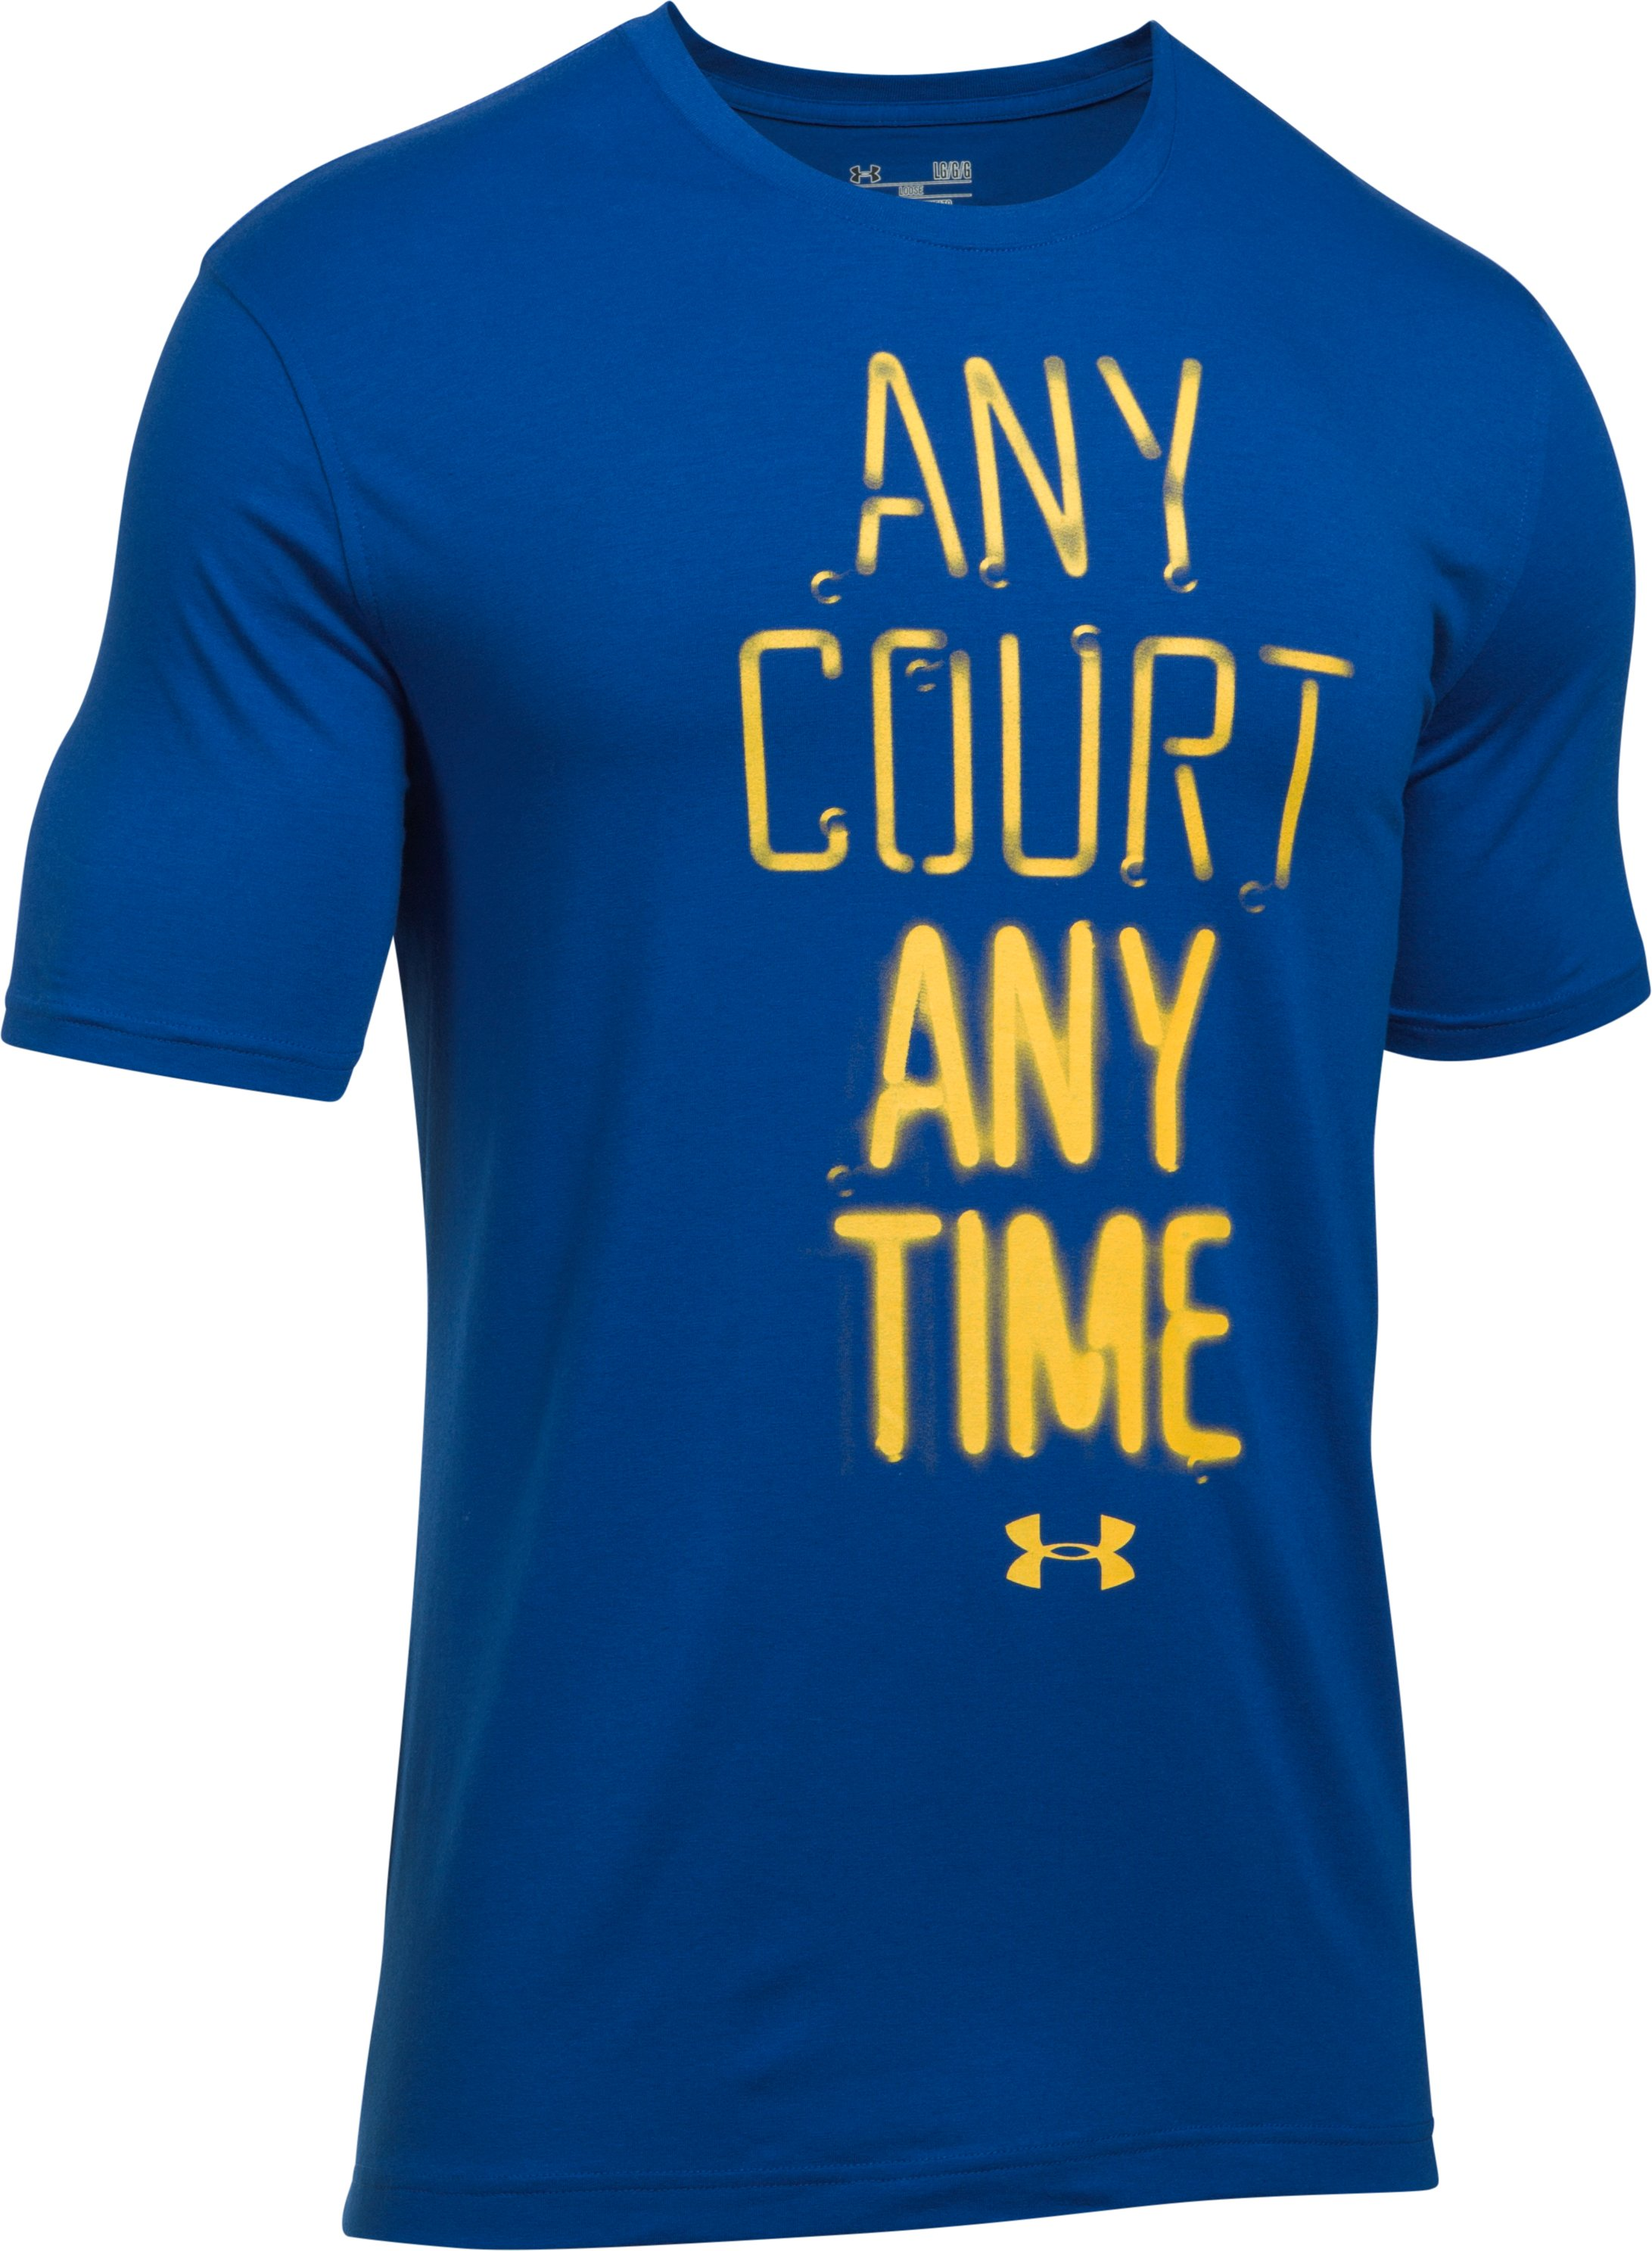 Men's UA Any Court Any Time T-Shirt, Royal